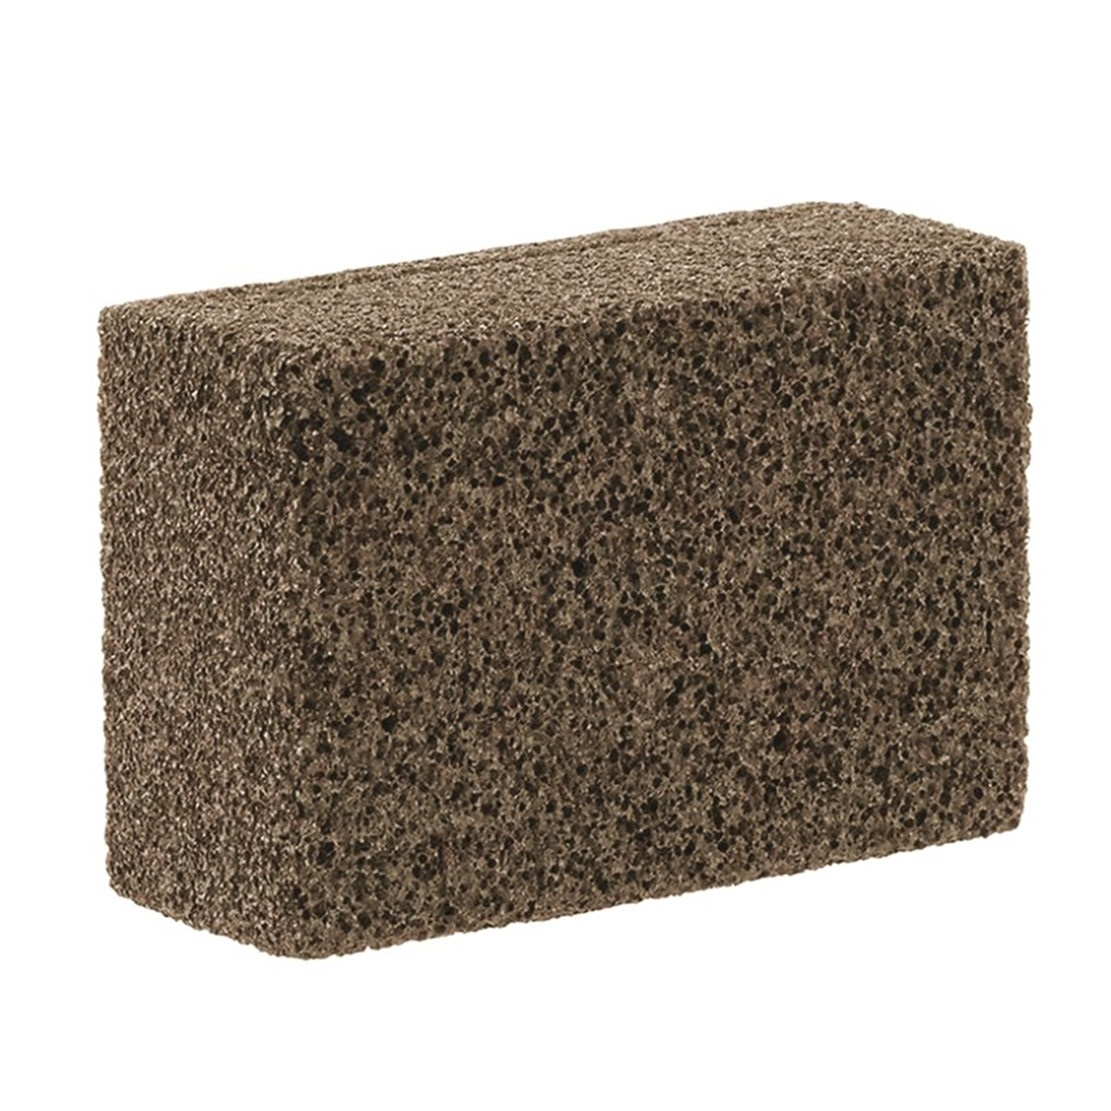 Pet Hair Pumice Stone From China The Leading Exporter Of